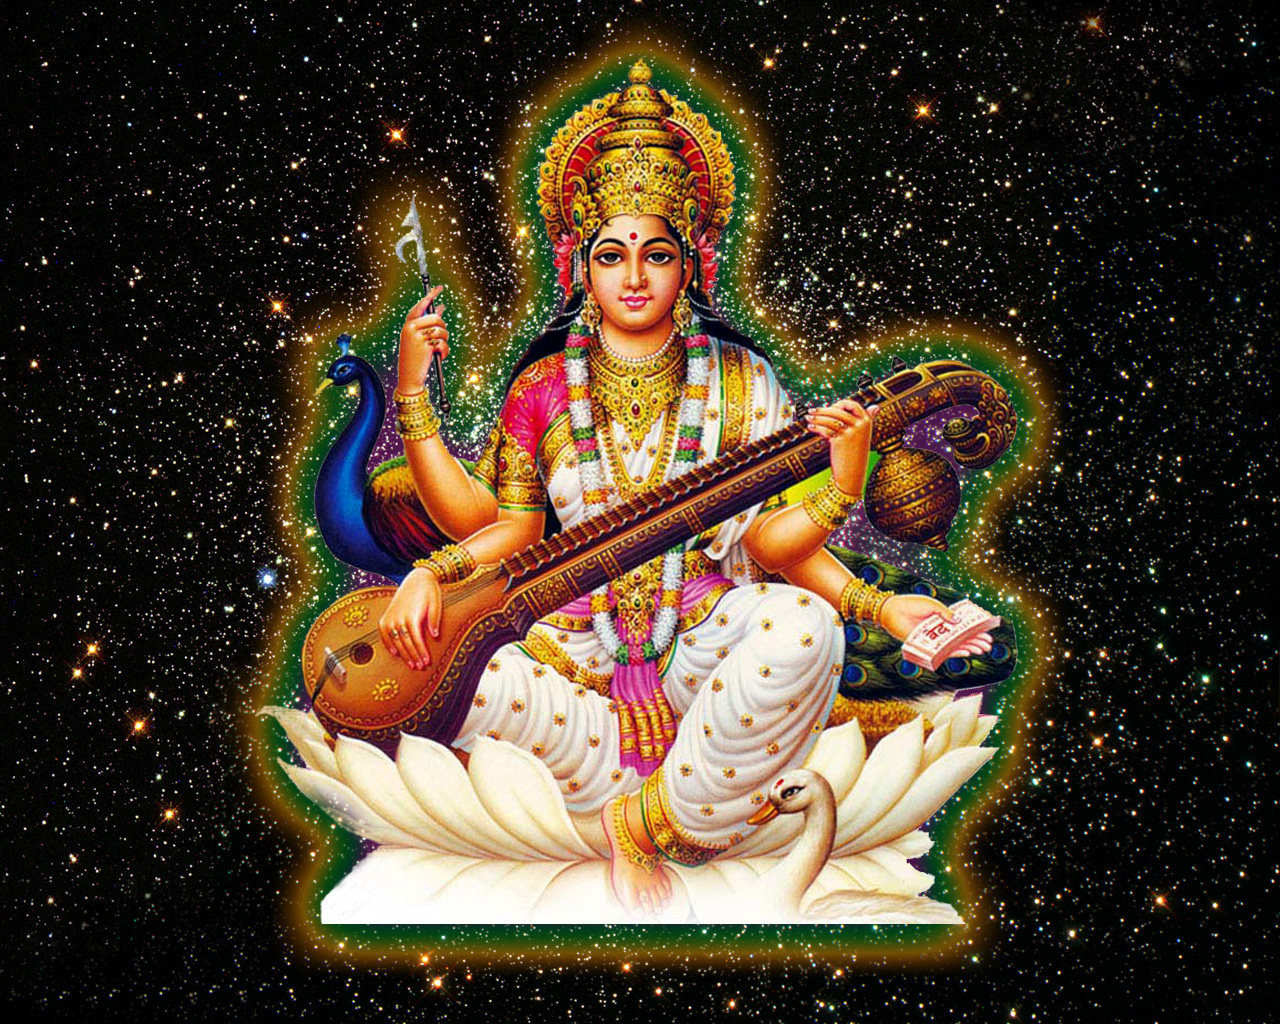 maa saraswati hindu goddess saraswati hd images god